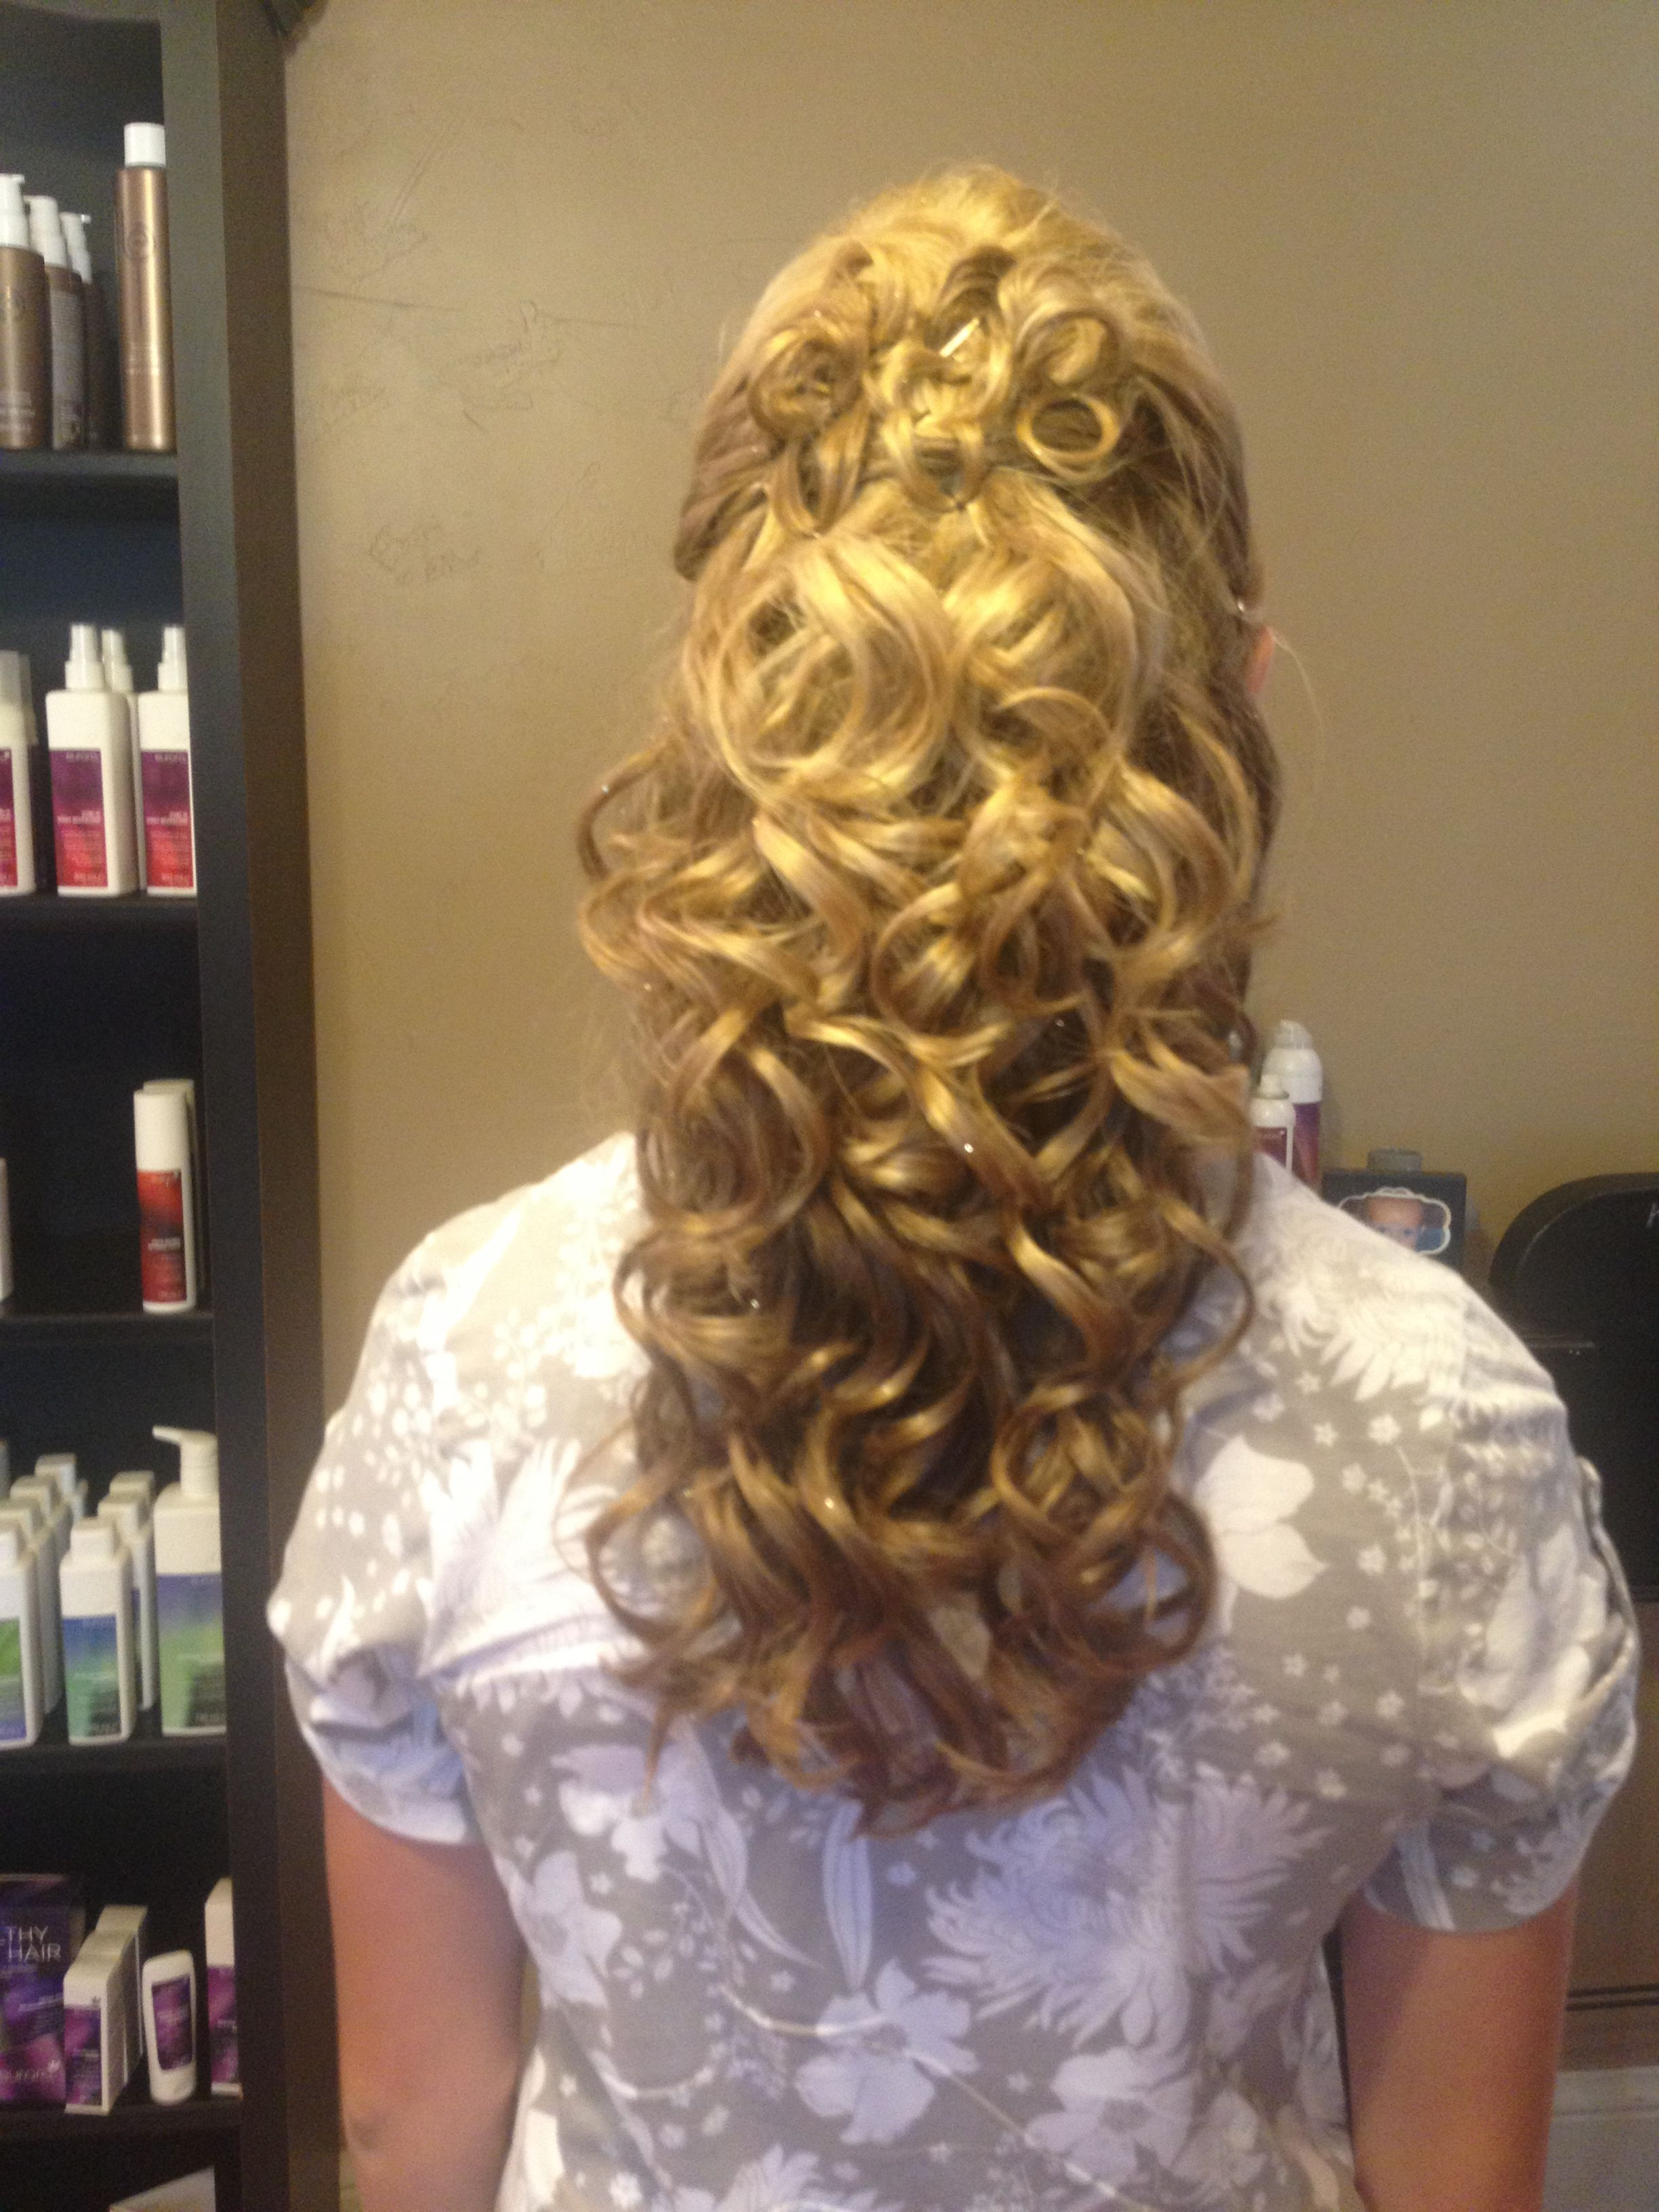 Hair for dance or other formal occasion hair styles that ium too